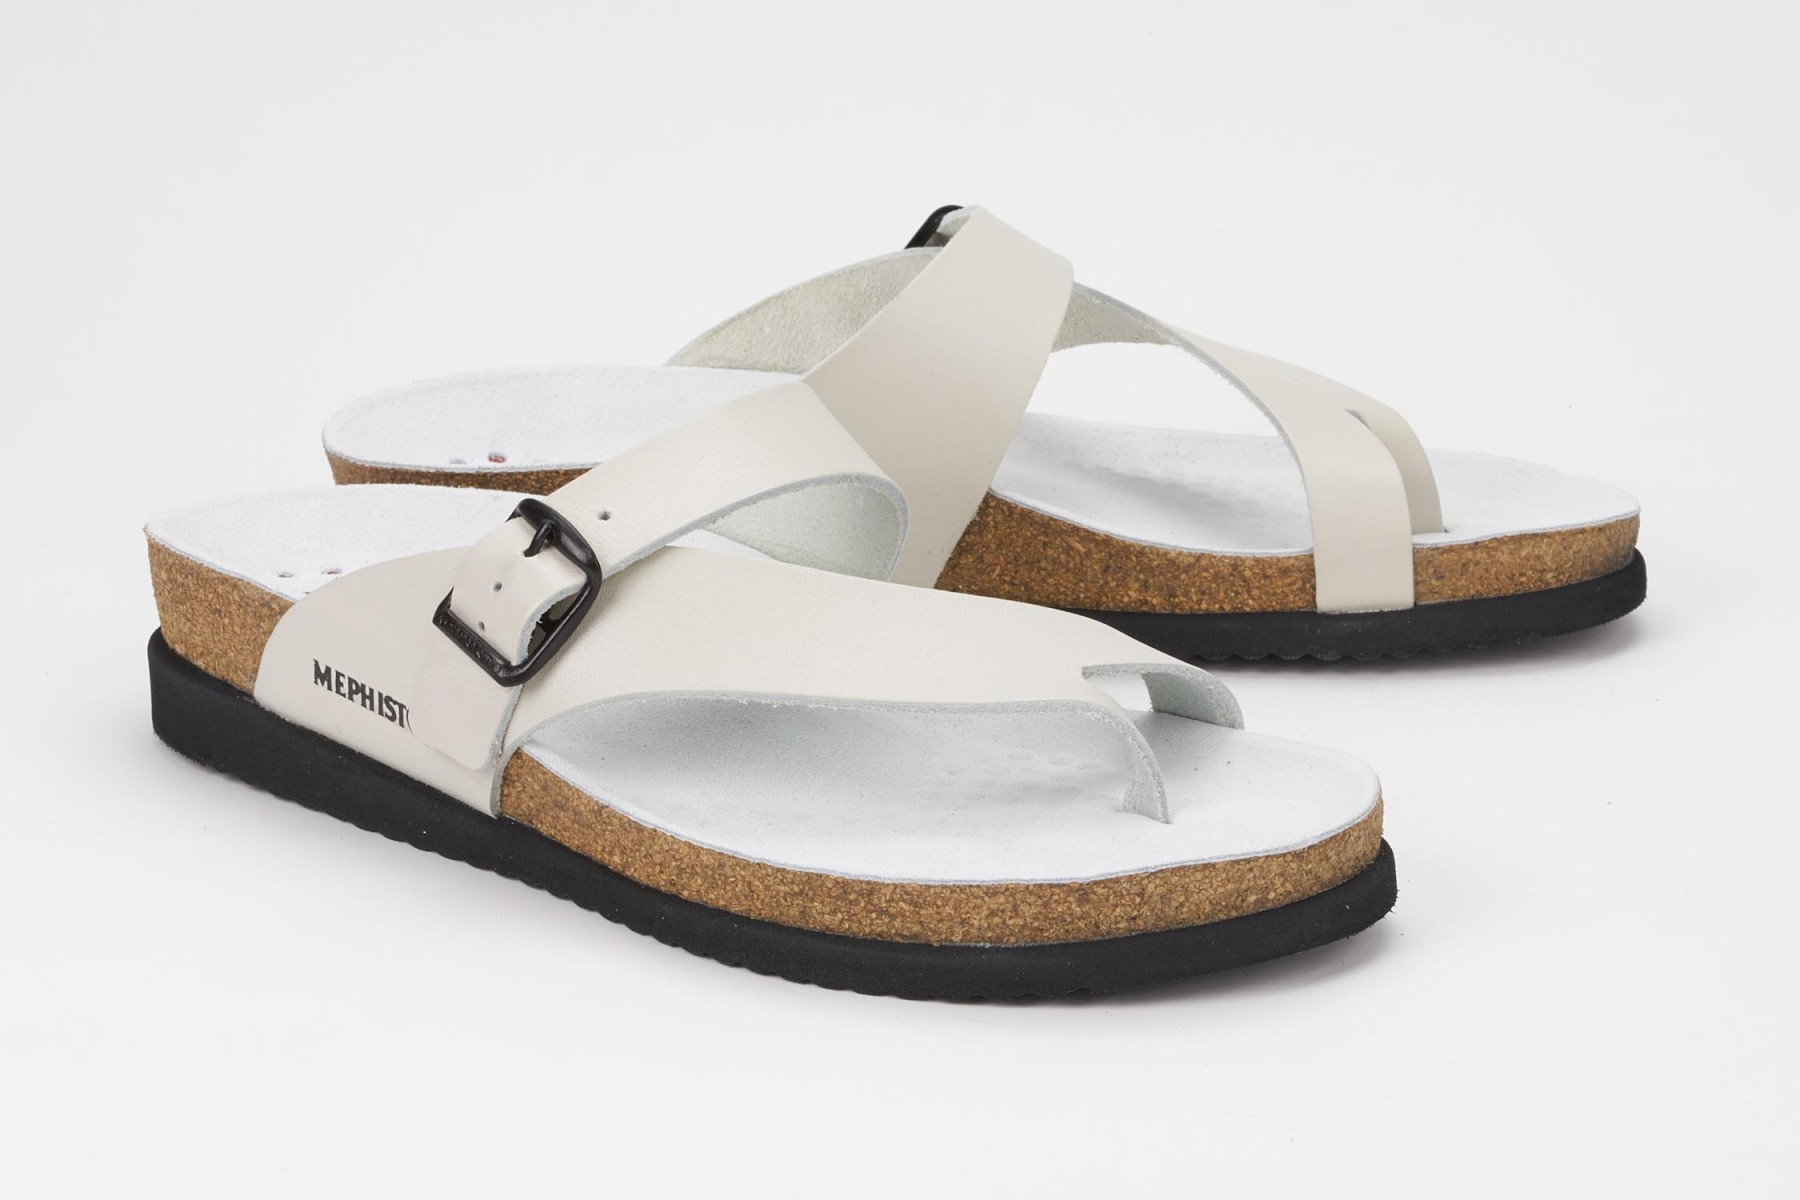 Helen Sandal Mephisto Women S Cork Footbed Sandals Smooth Leather